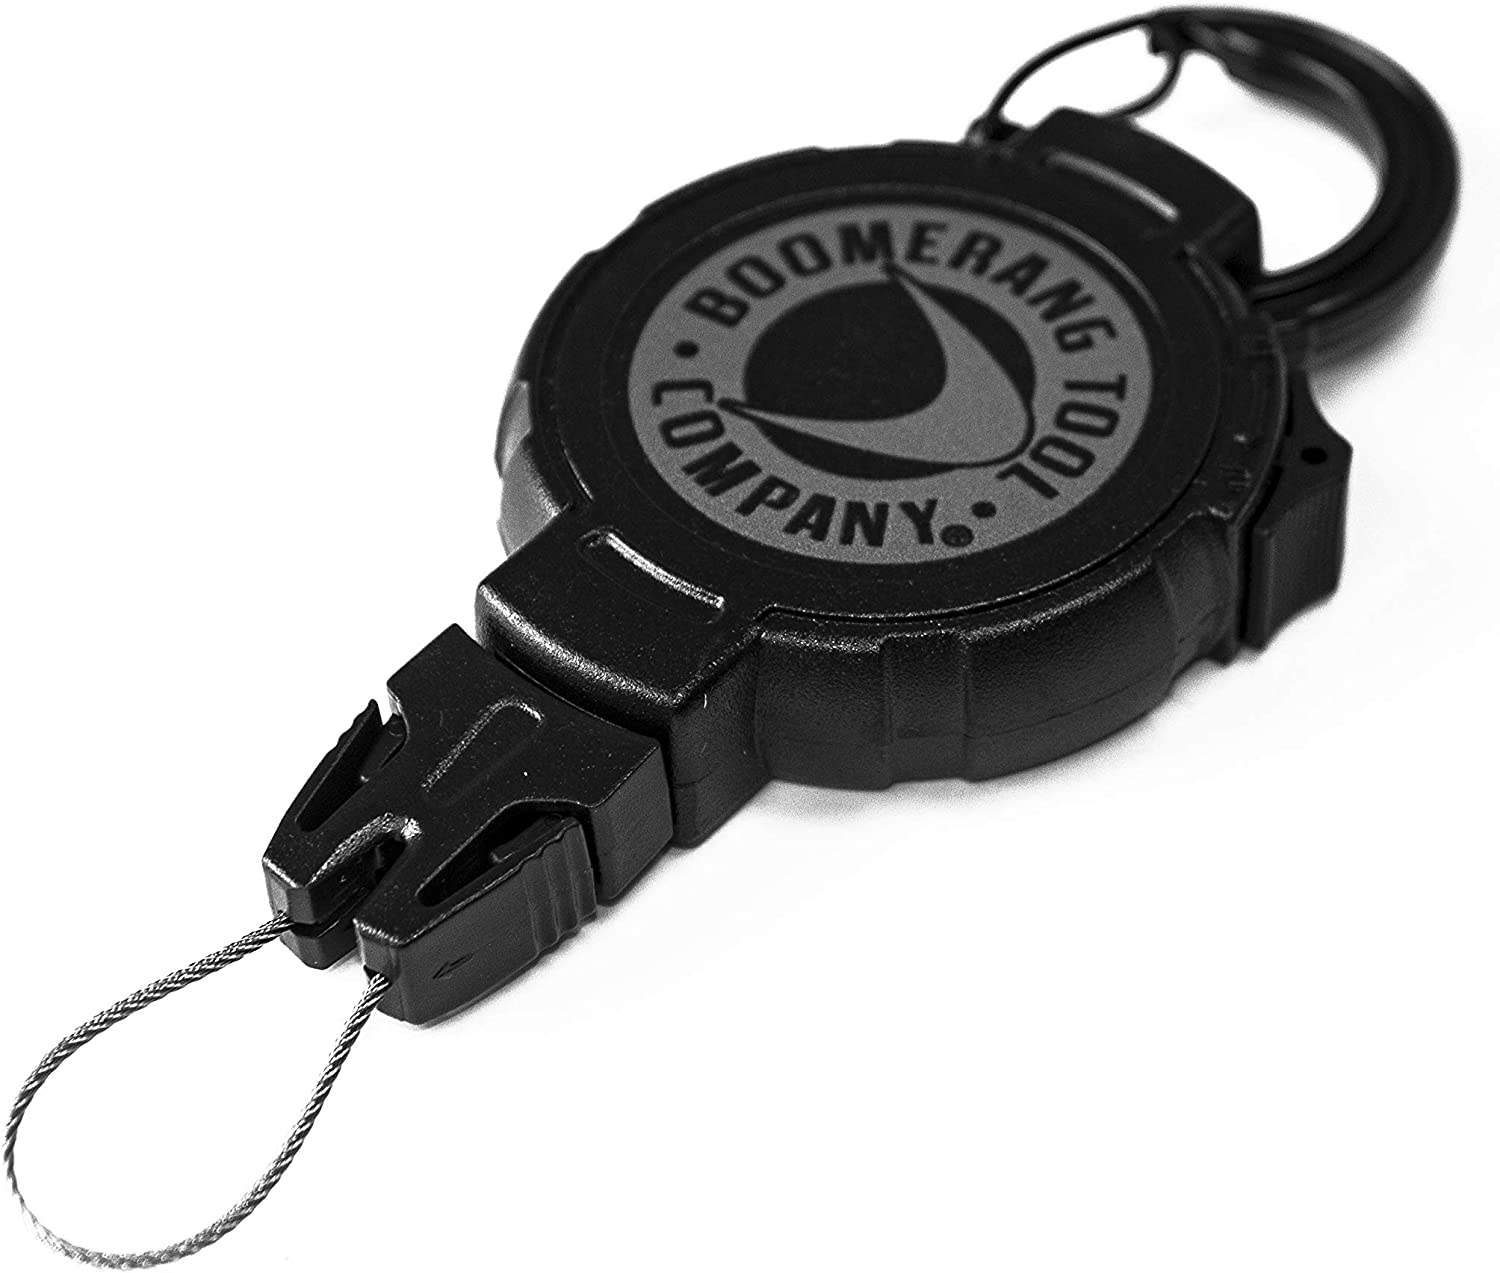 Made in The USA Boomerang Scuba Diving Retractable Gear Tethers with a Kevlar Cord and Universal End Fitting Great for Scuba Diving Gauges Flashlights Cameras and More